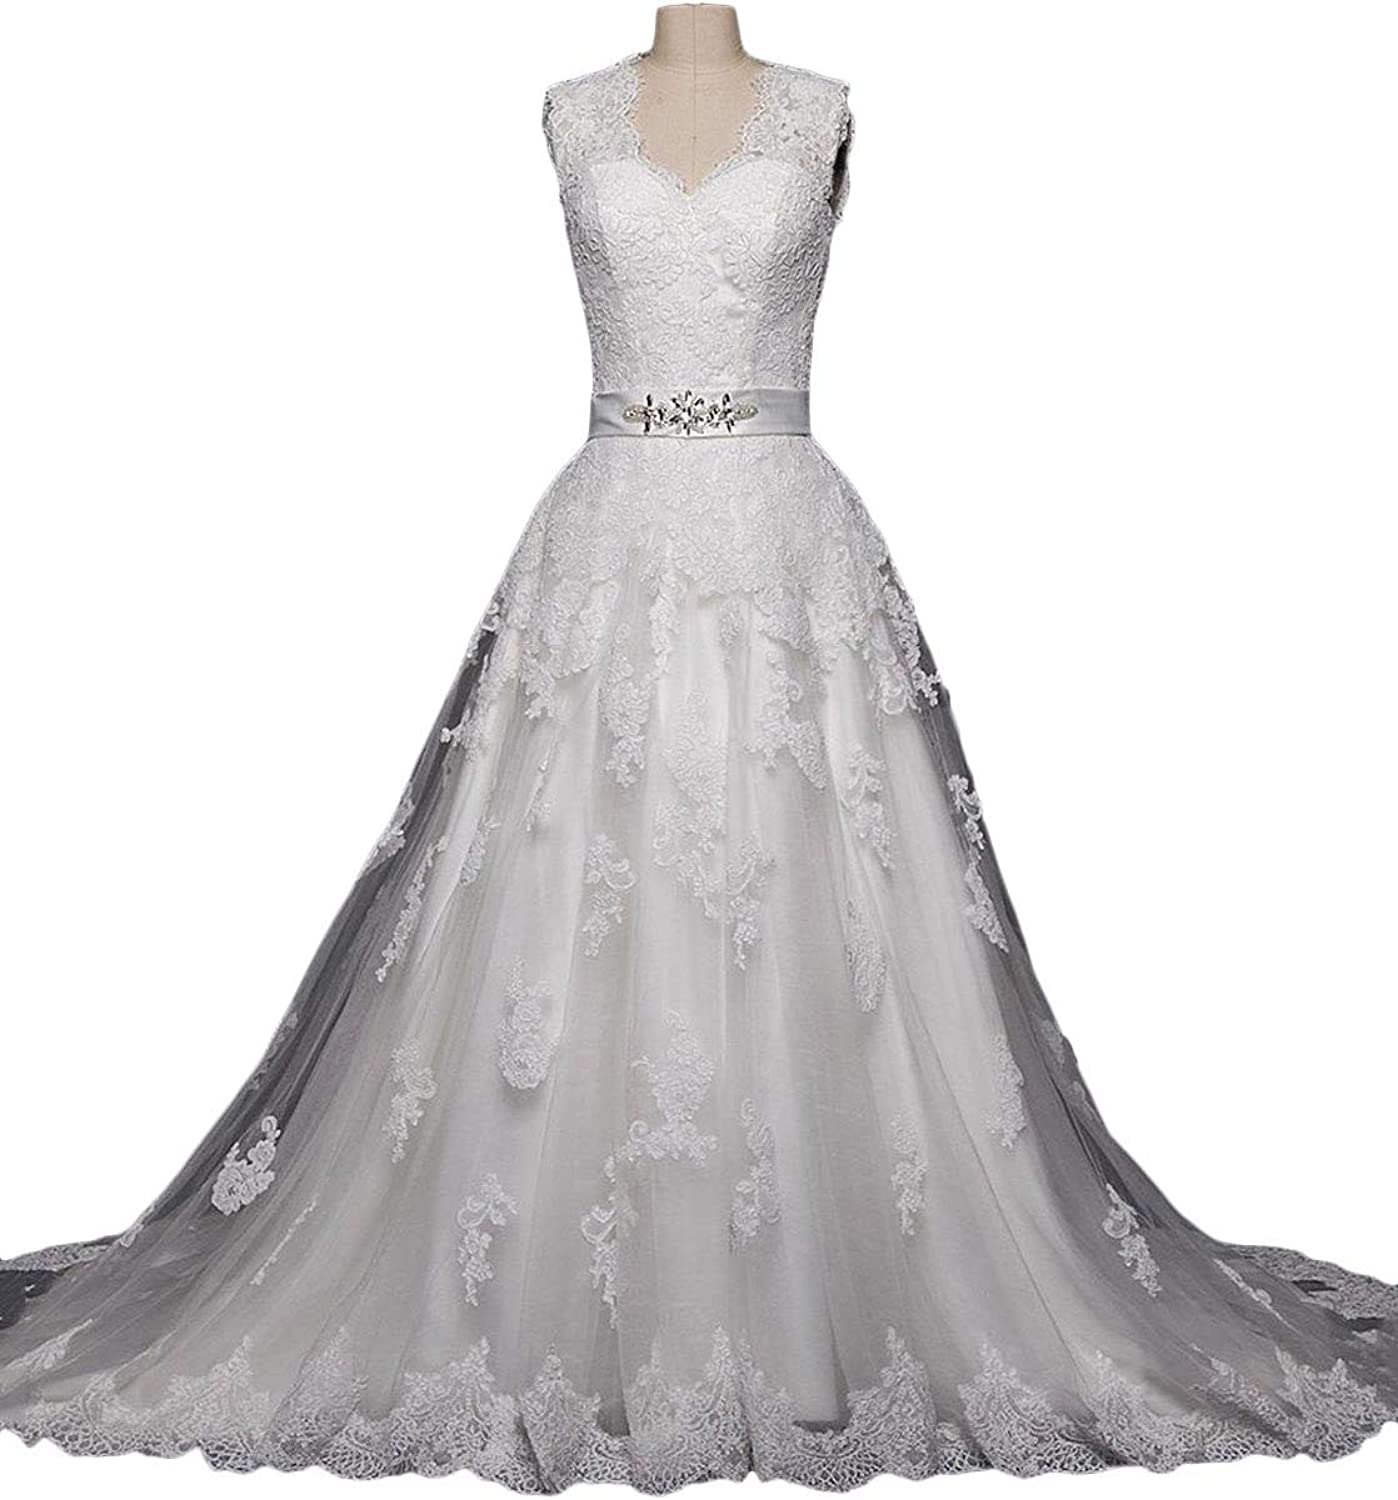 Baixia Princess Wedding Dresses Applique Lace Sweetheart Puffy Ball Gown Bridal Dress